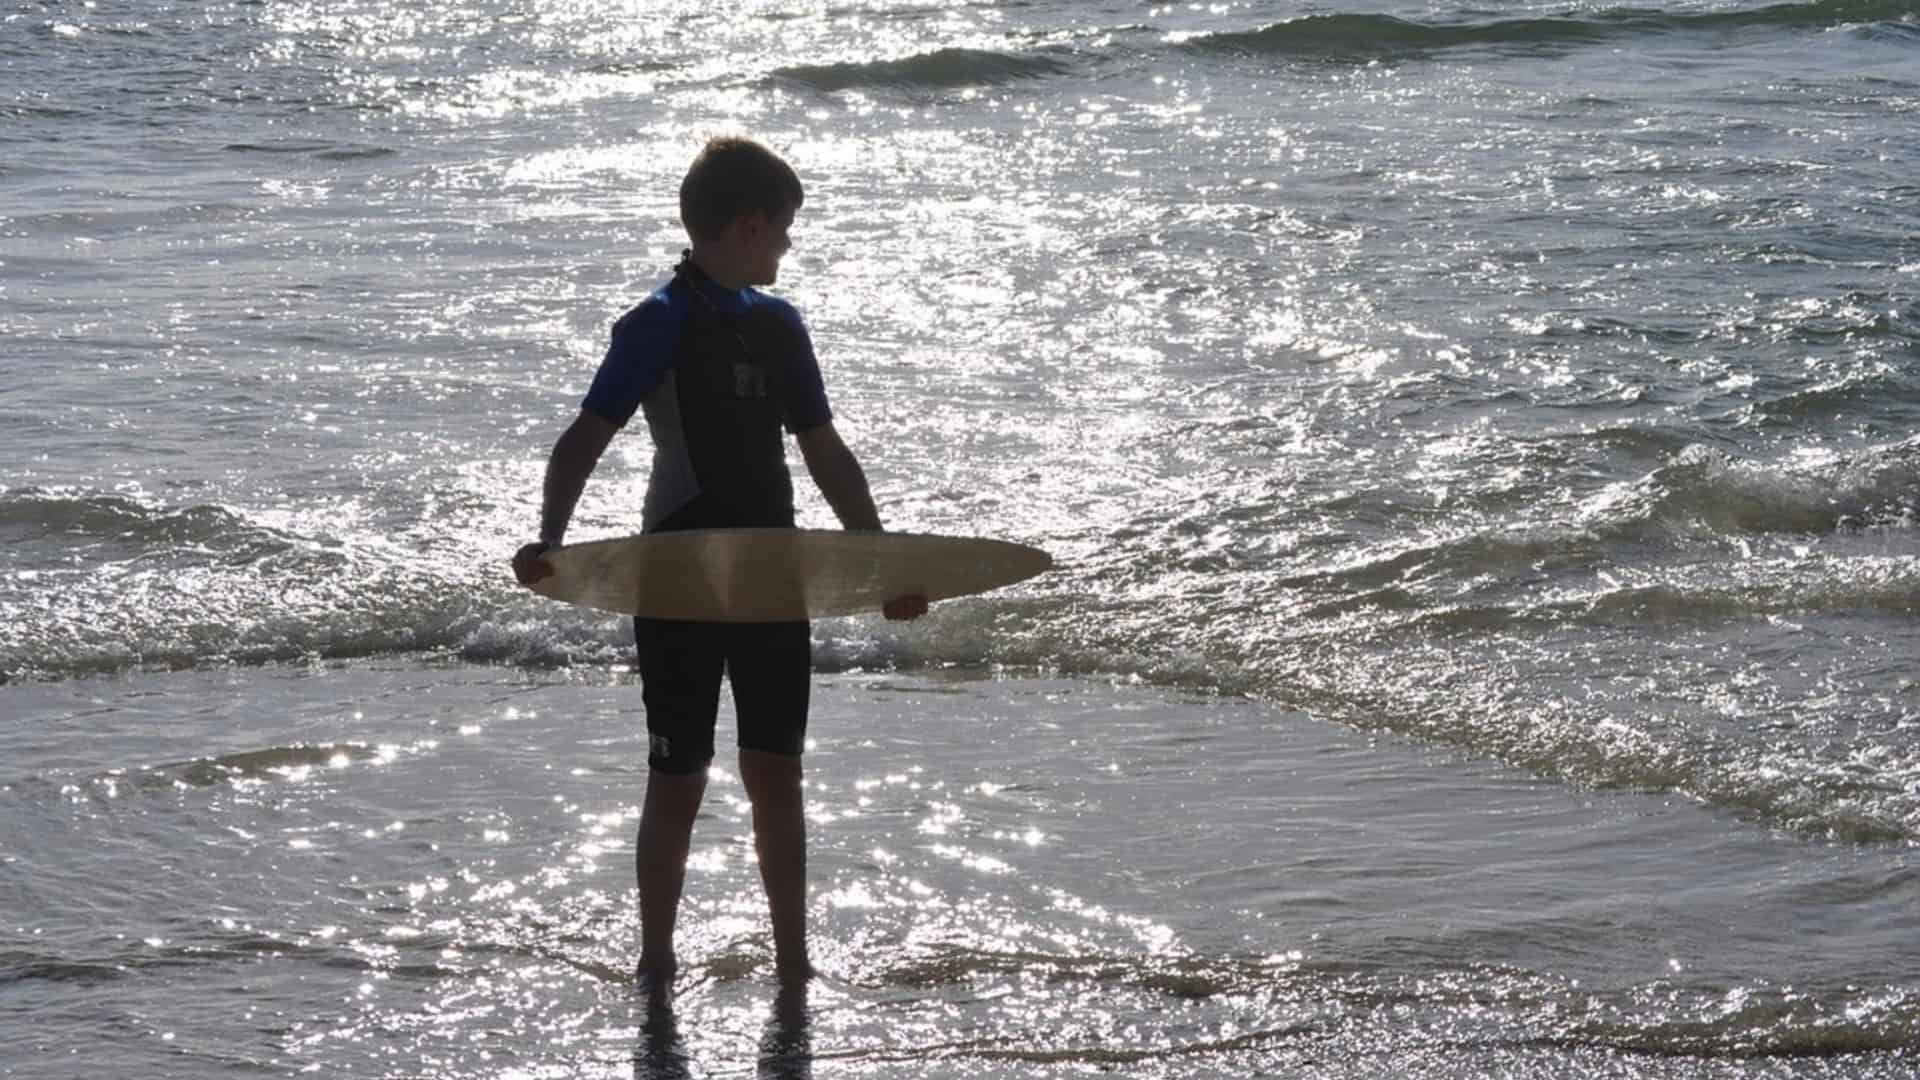 Great Tips for Skimboarding